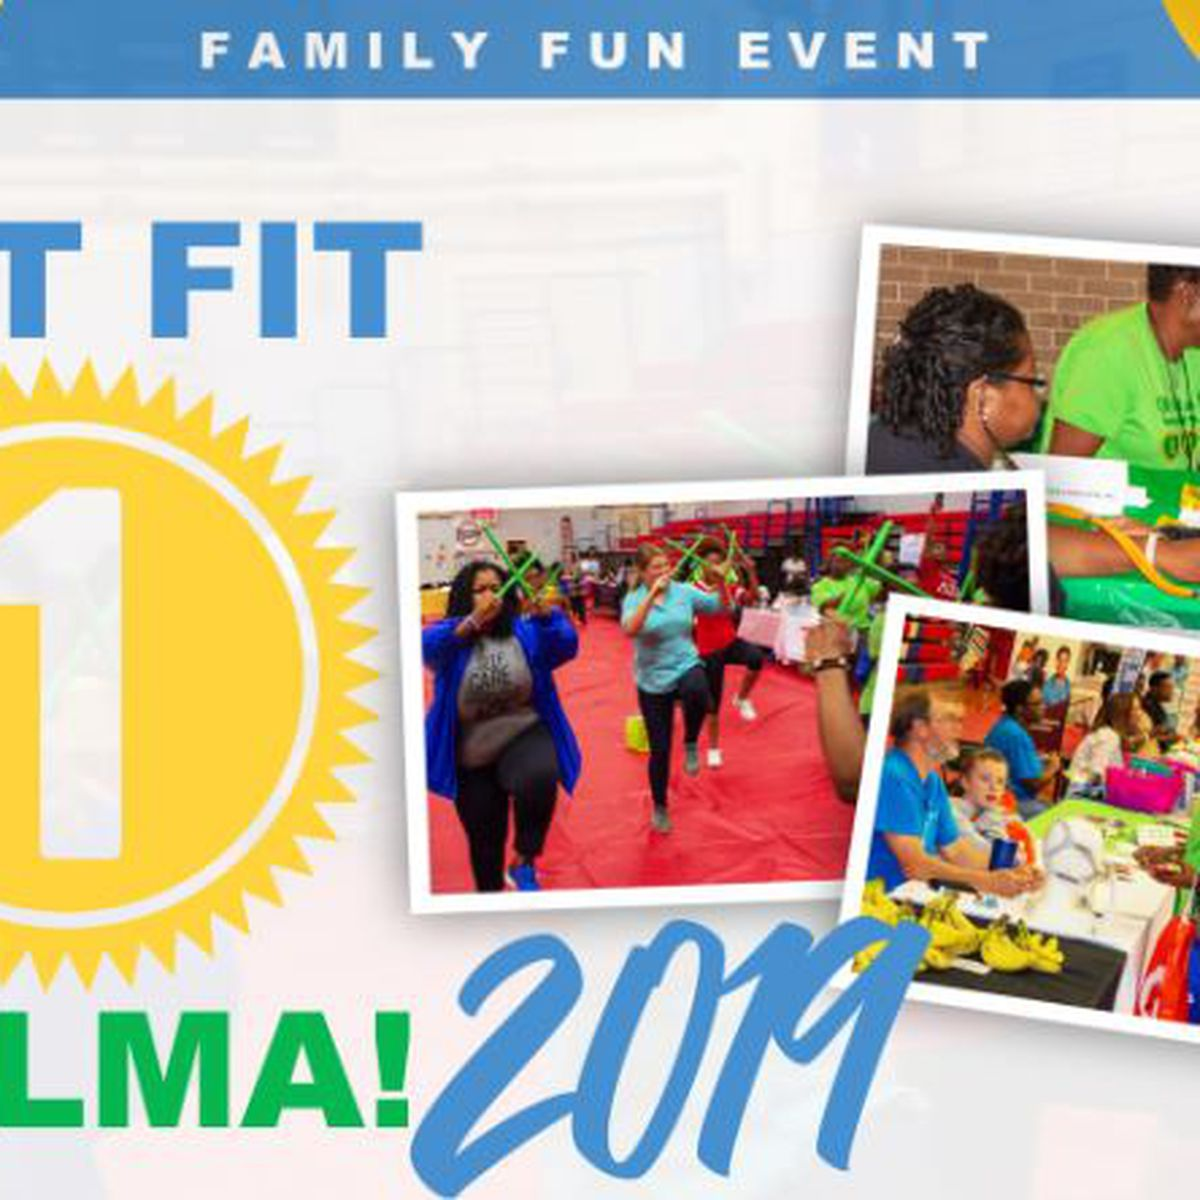 'Get Fit' at family fun event in Selma